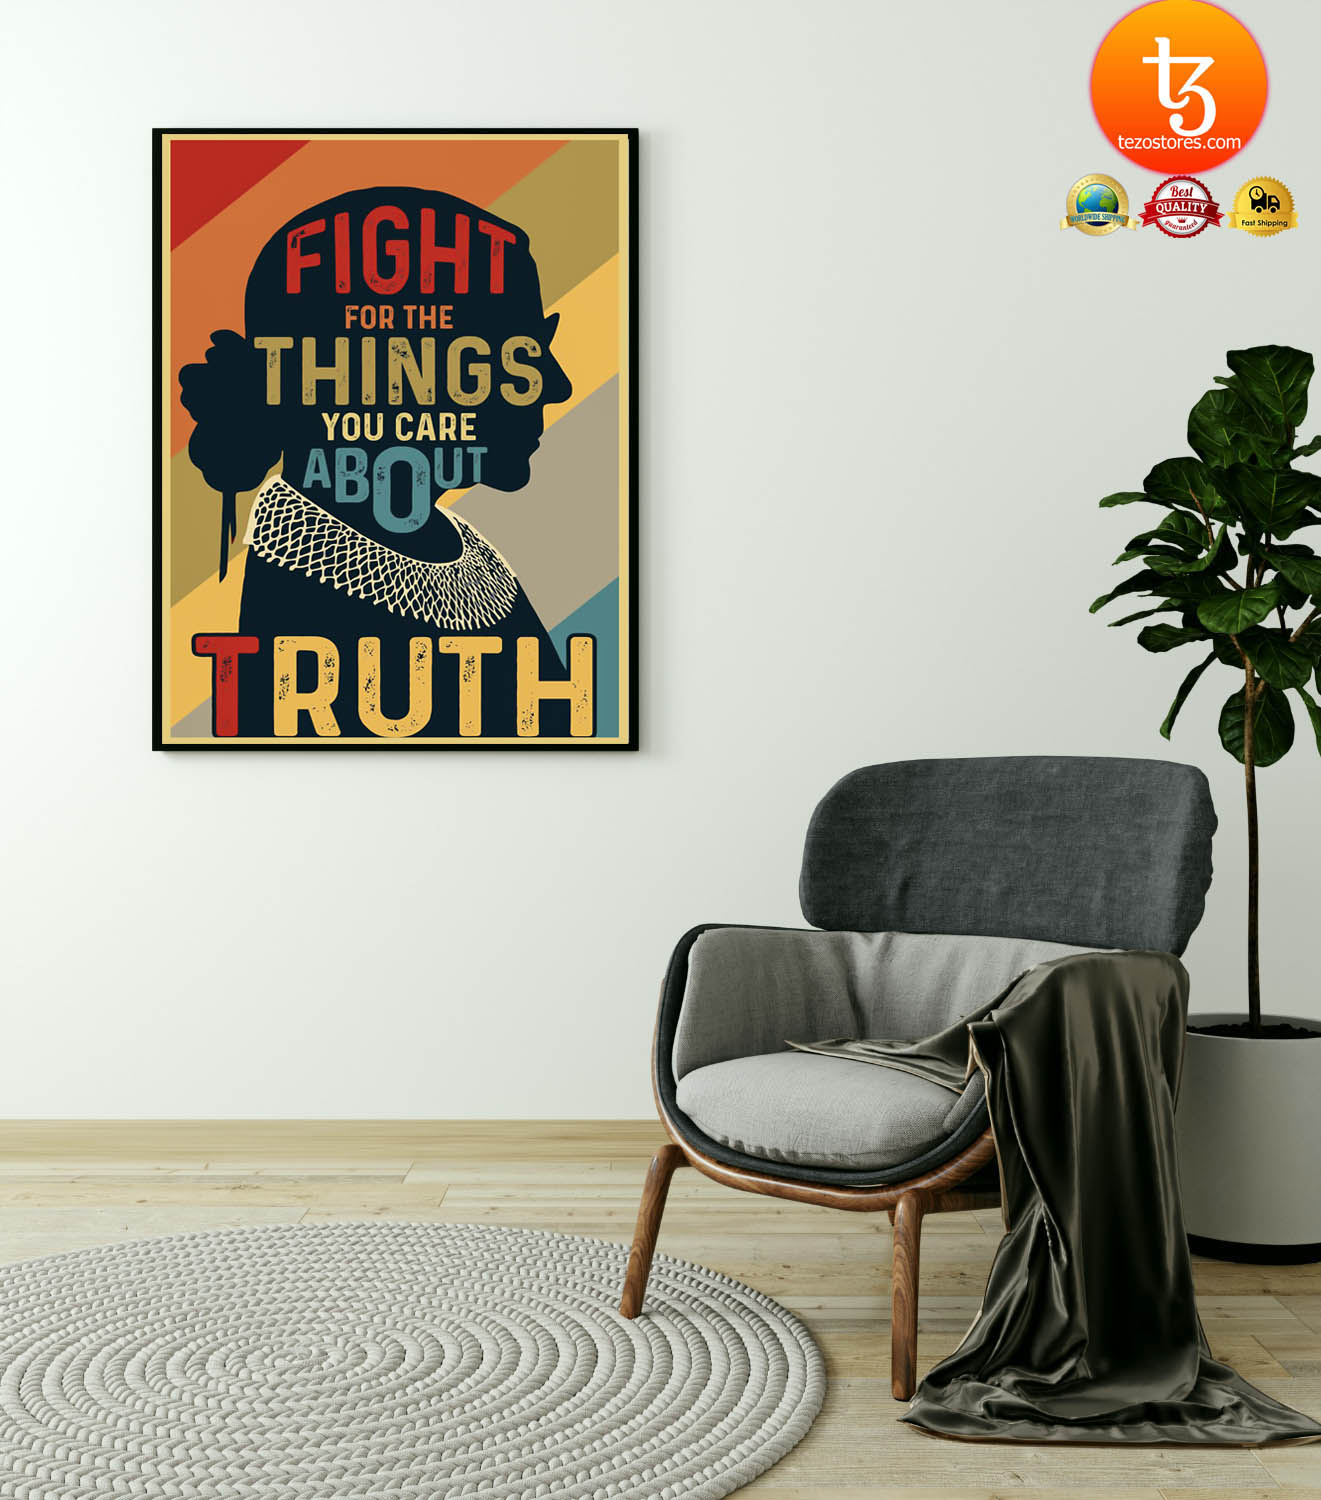 Ruth Fight for the things you care about truth poster